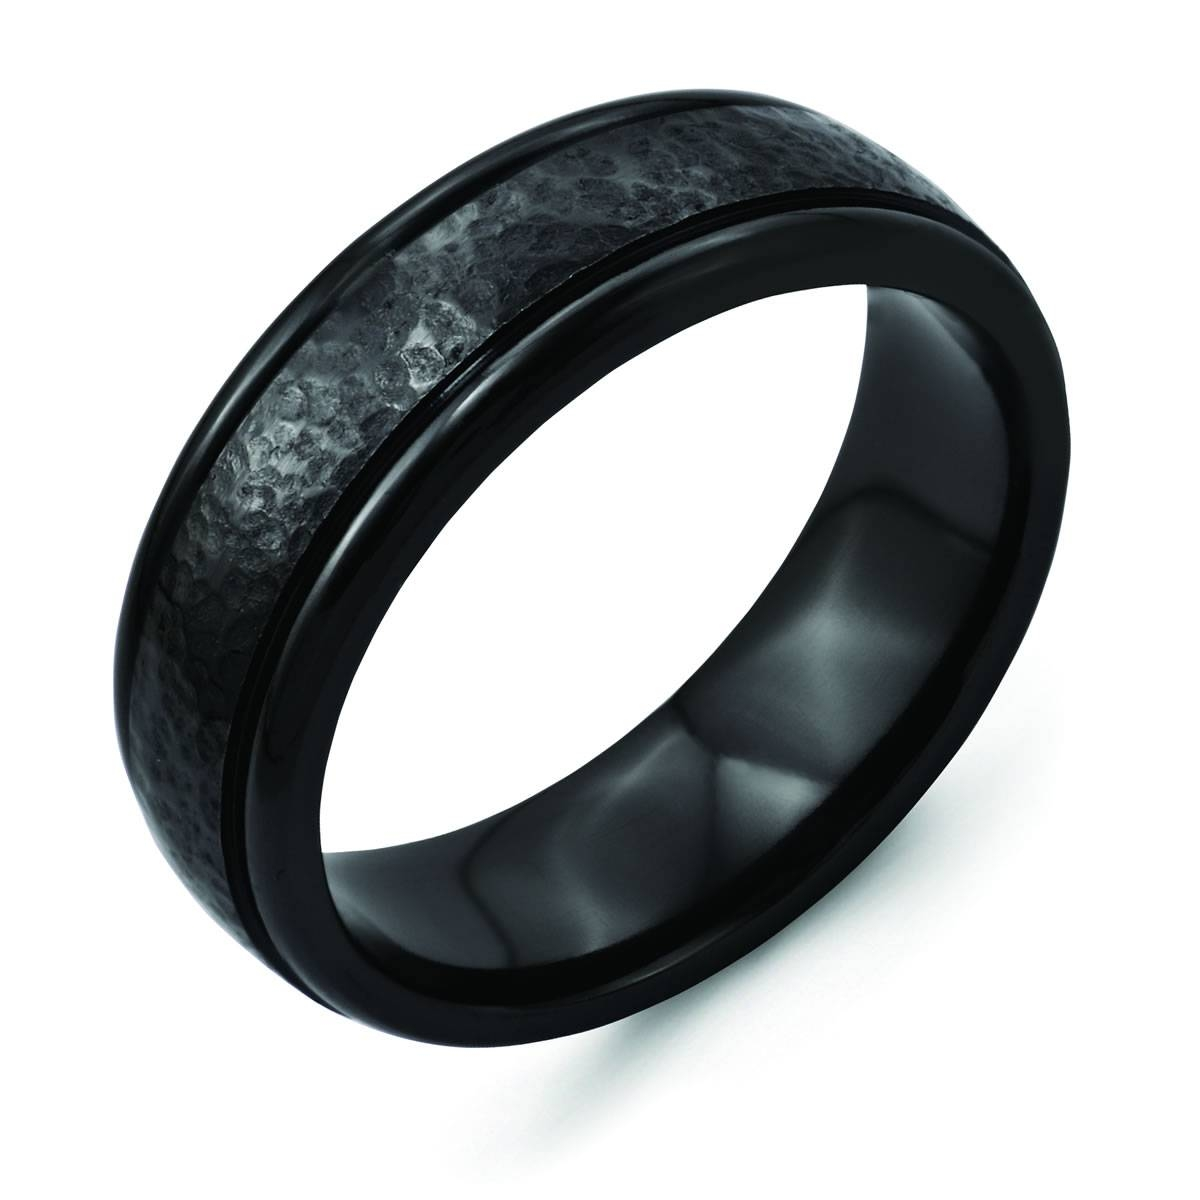 Titanium Black Ti Hammered Ridged Edge 7Mm Brushed Men's Wedding With Regard To Titanium Wedding Bands For Men (View 12 of 15)